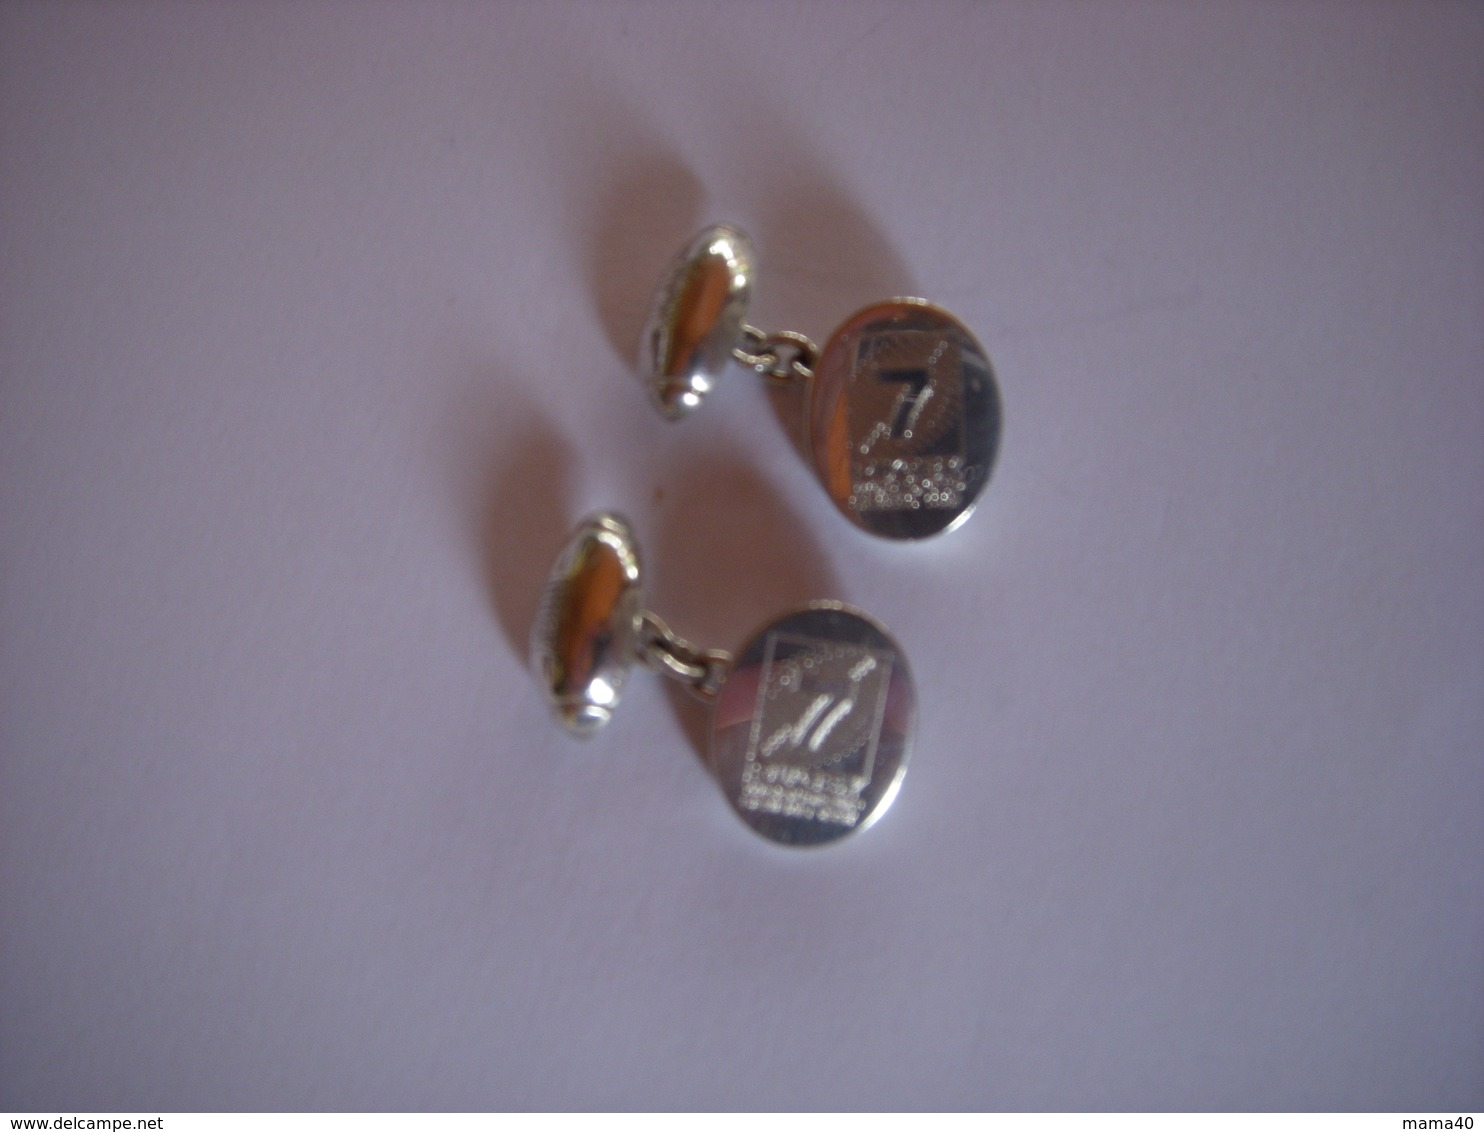 BOUTONS DE MANCHETTES - SPORT - RUGBY A 7 - WORLD CUP SEVENS - Cuff Links & Studs